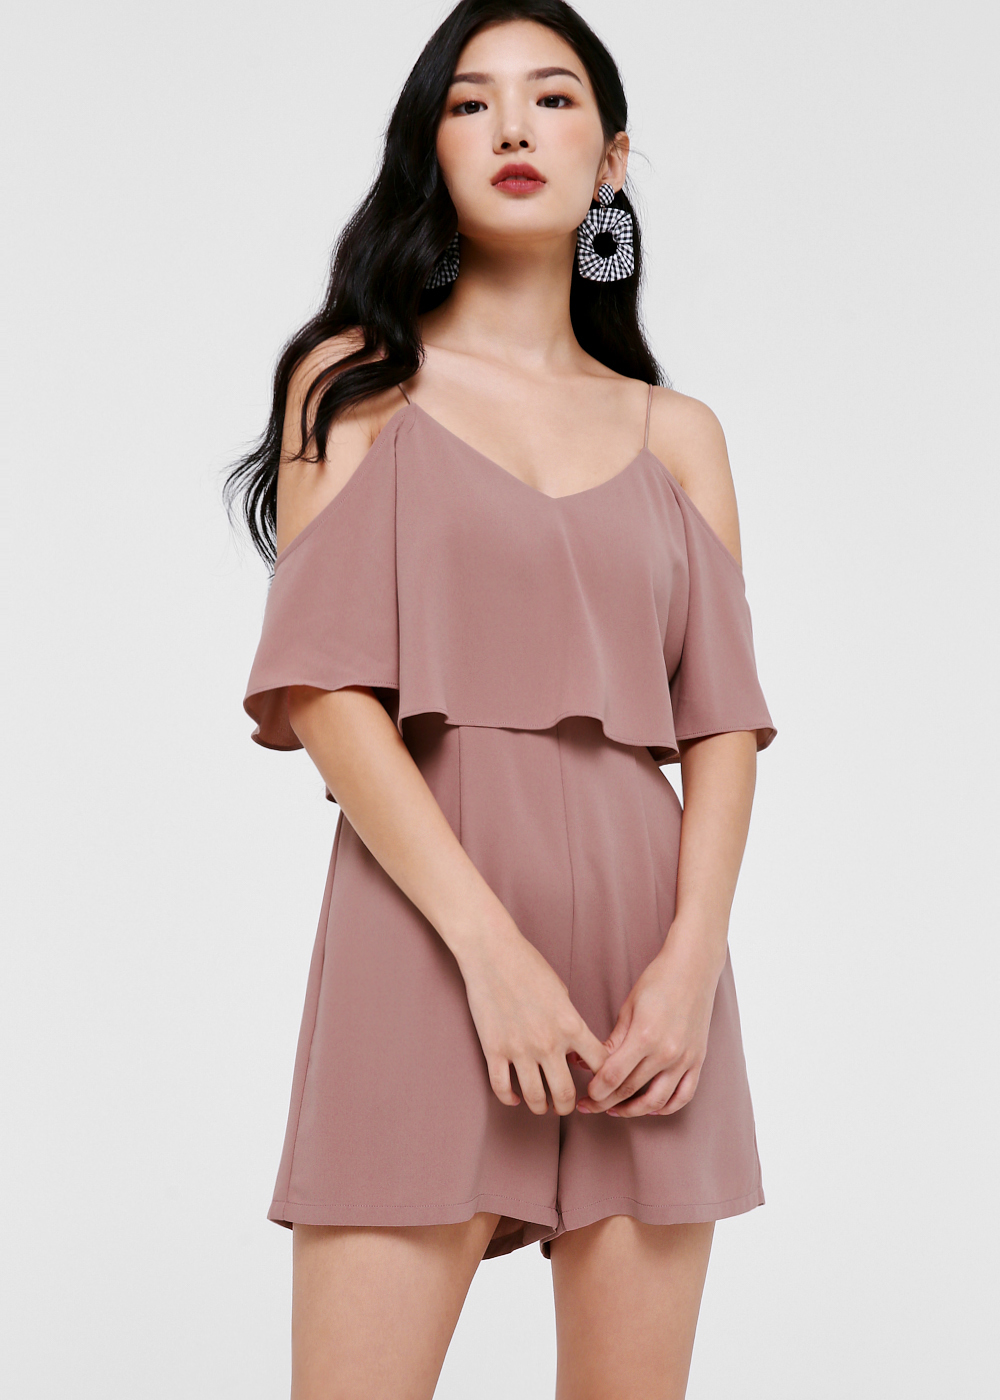 Estelle Overlay Cold Shoulder Romper